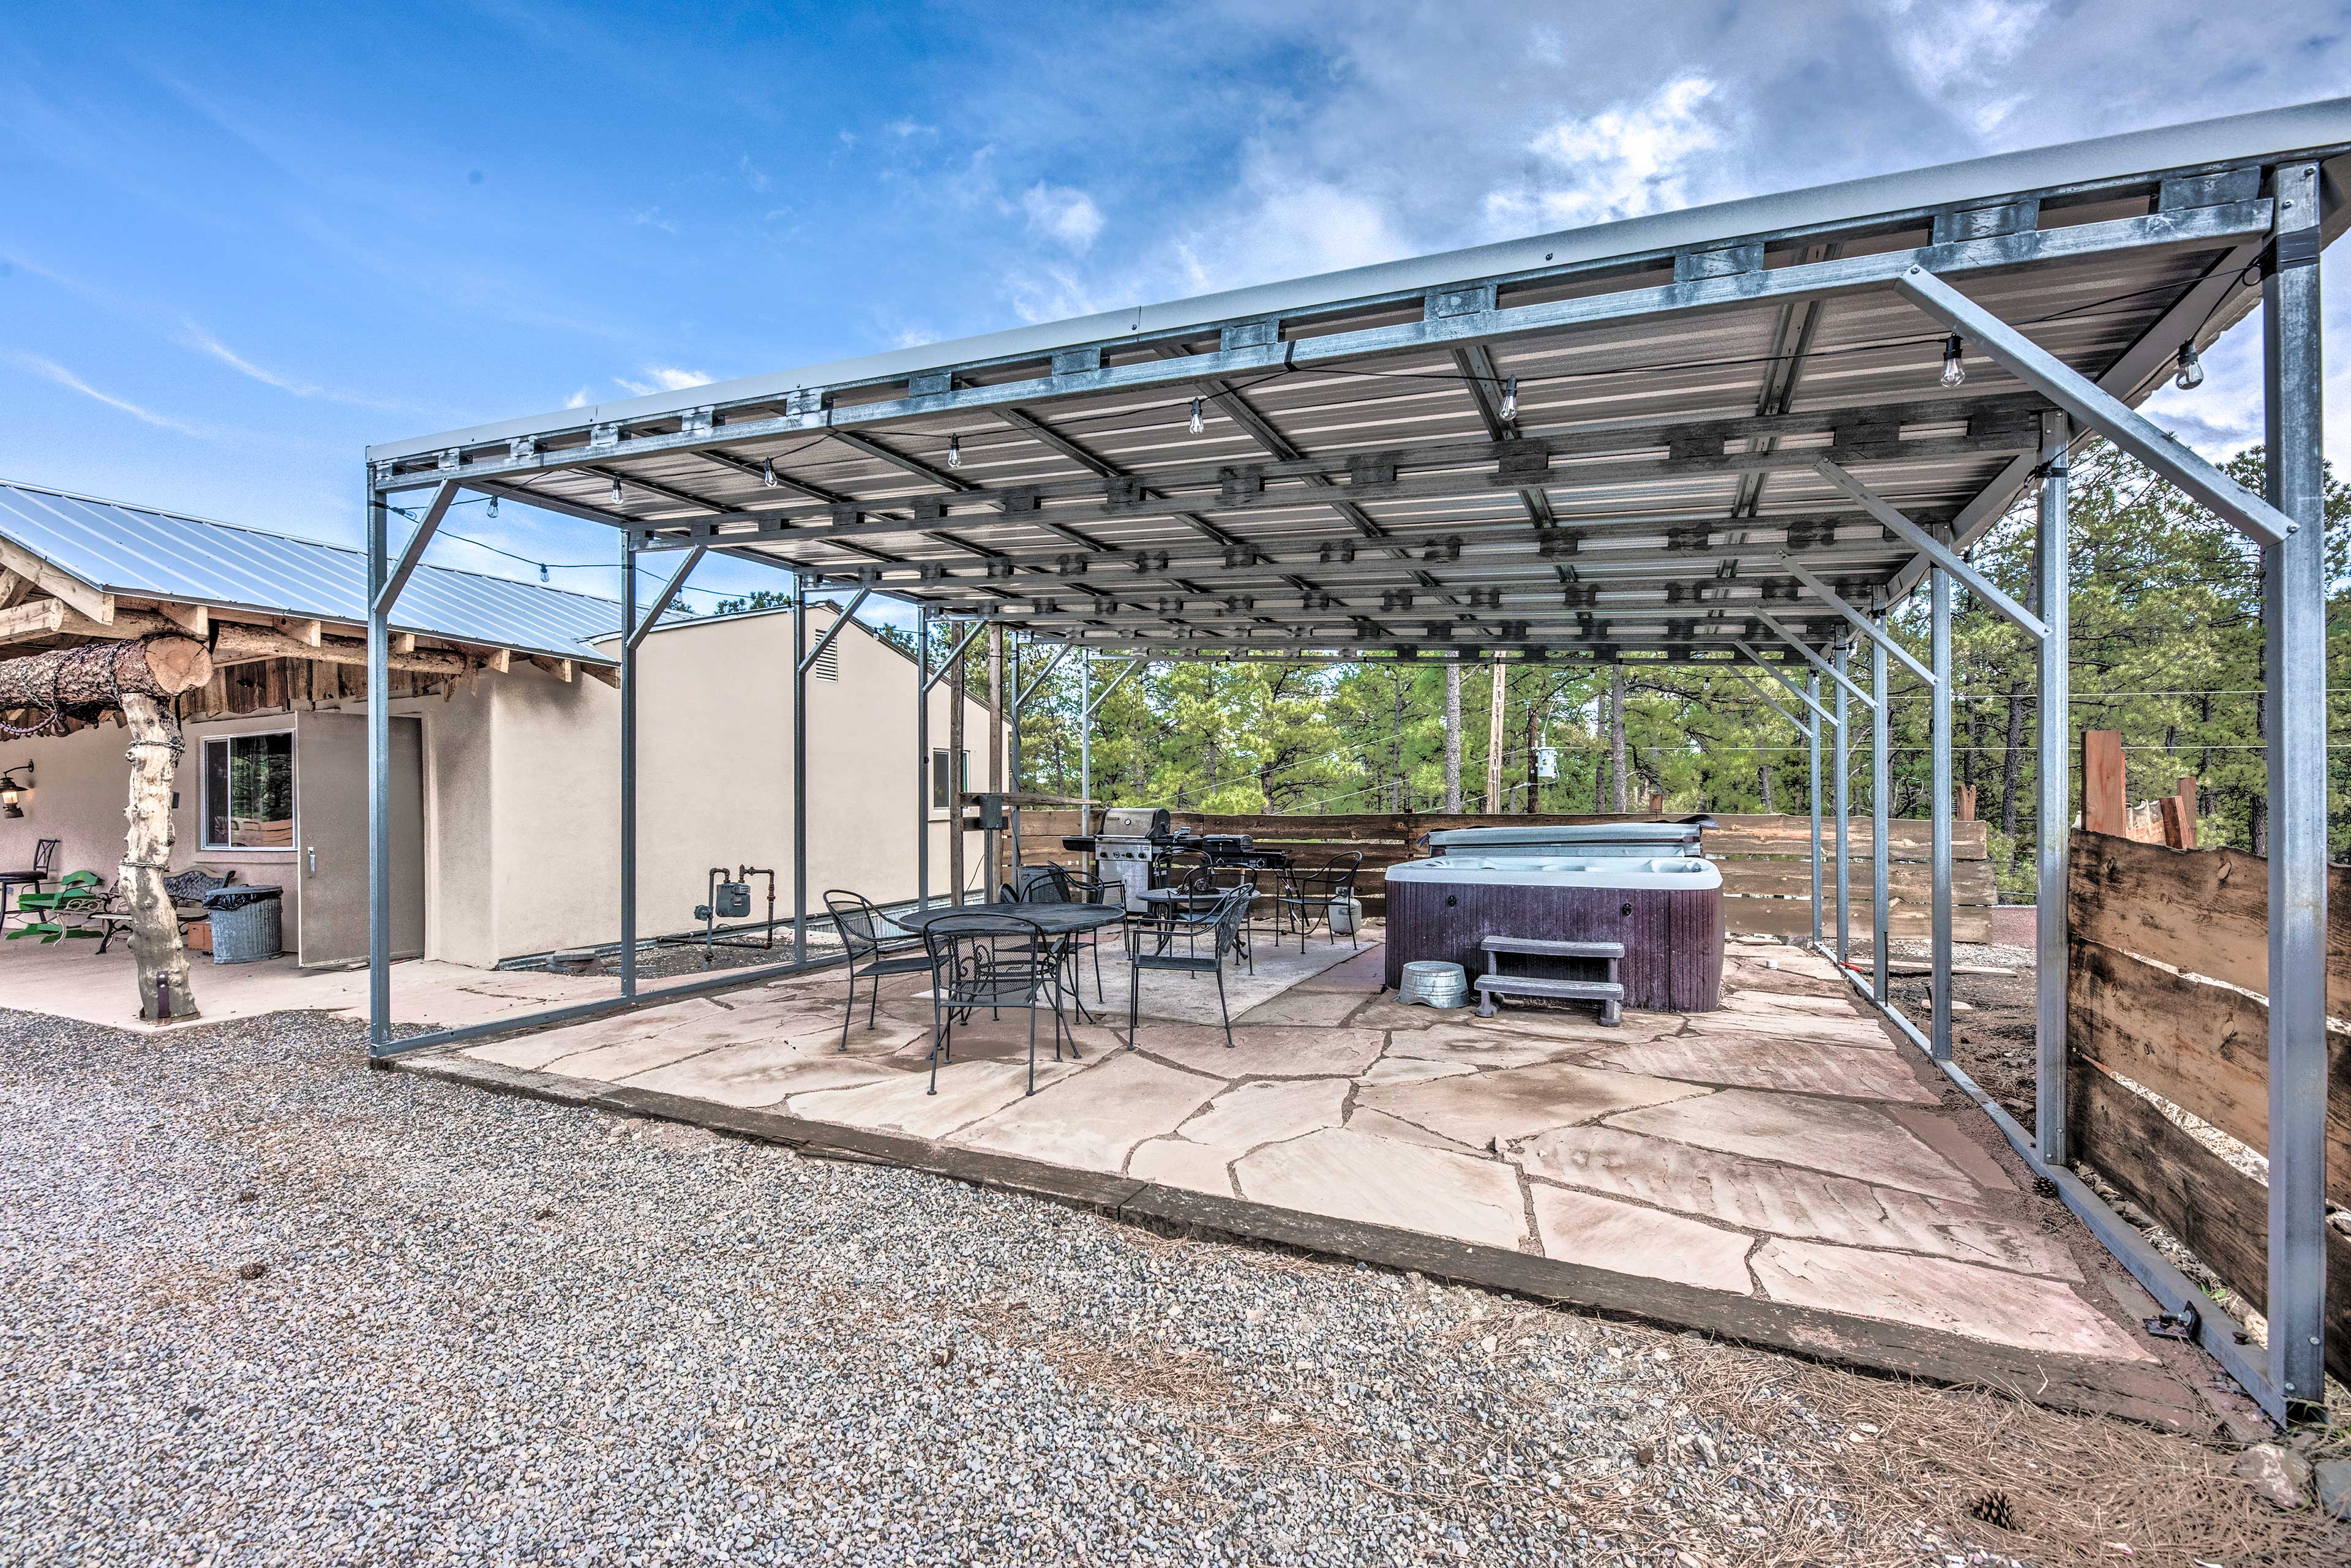 Covered Patio | Gas Grill | Outdoor Dining Area